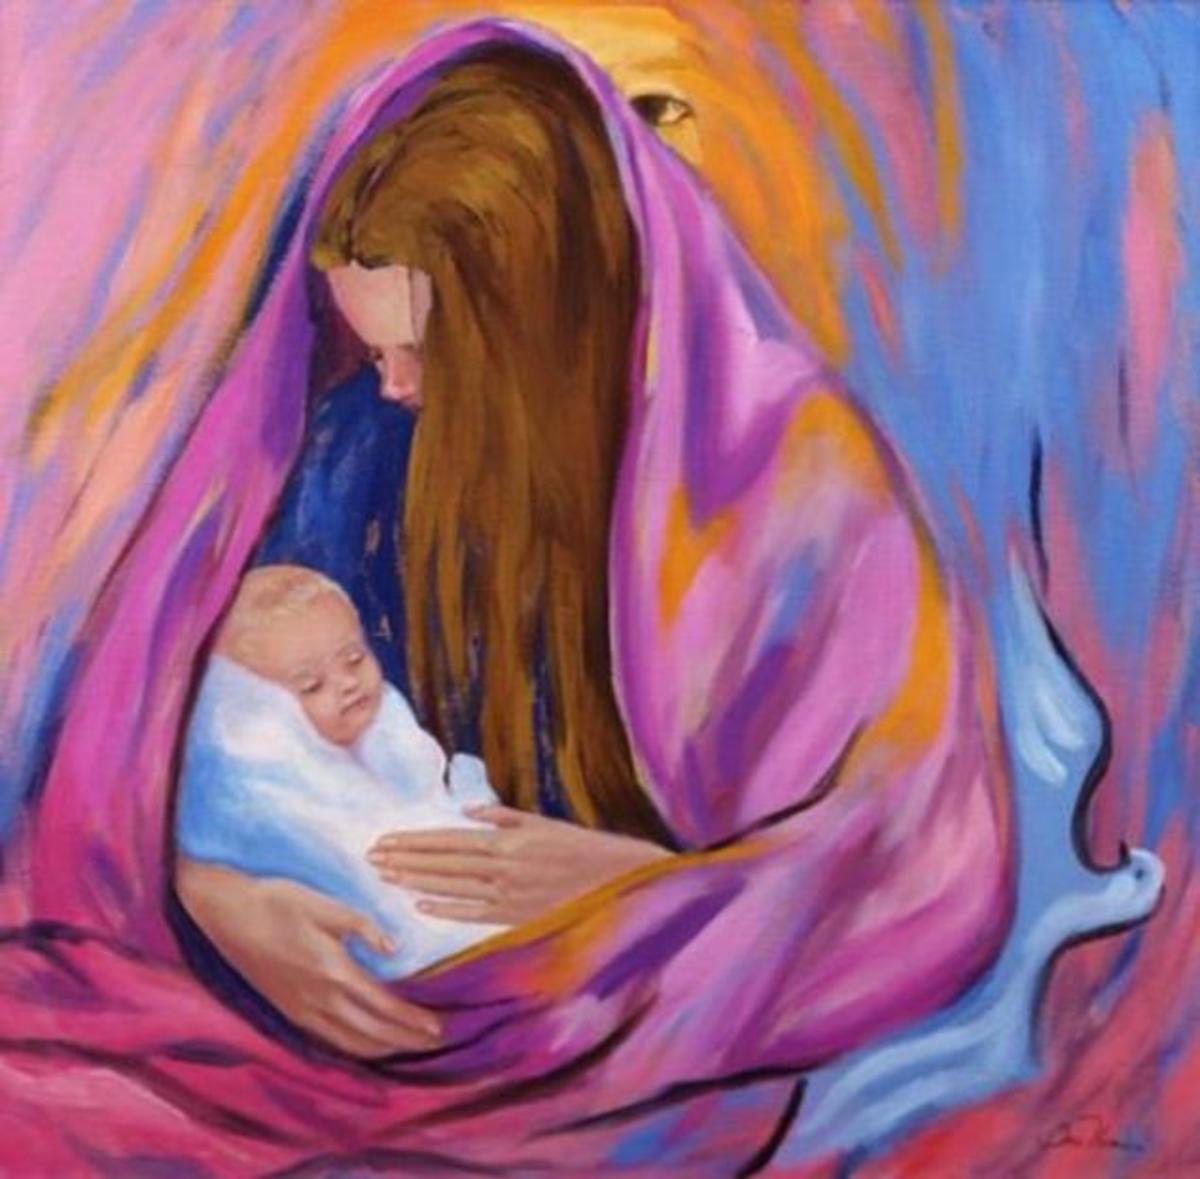 Prayer of Healing from Covid-19: Prayer to Our Blessed Mother Mary